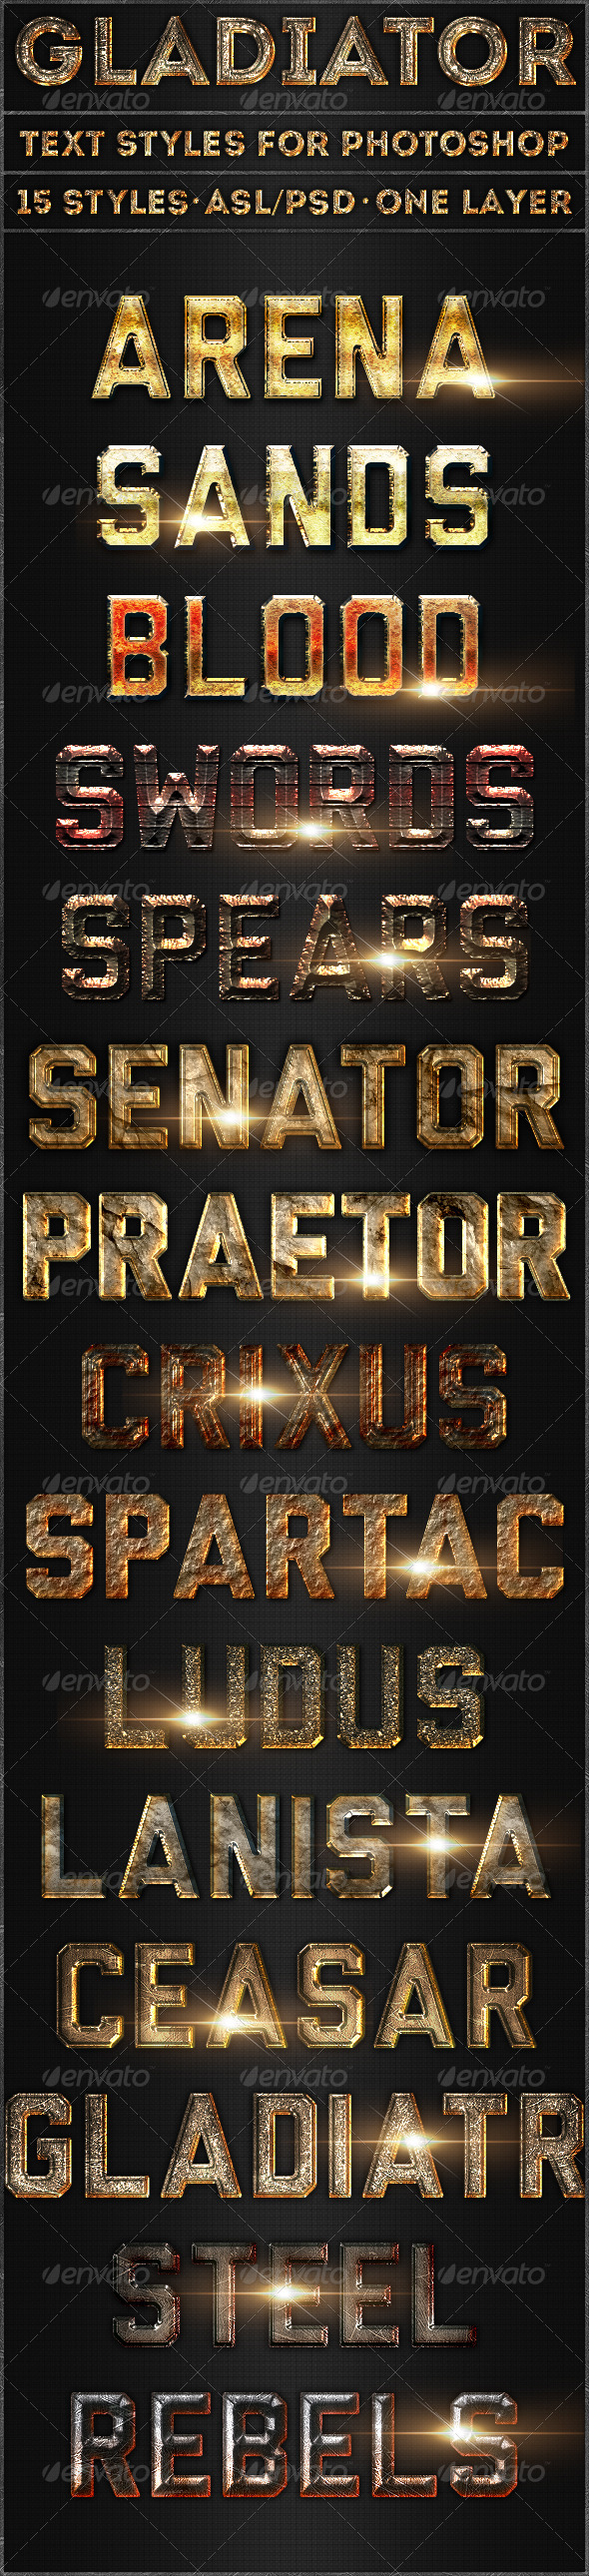 GraphicRiver Gladiator Text Styles 5317136